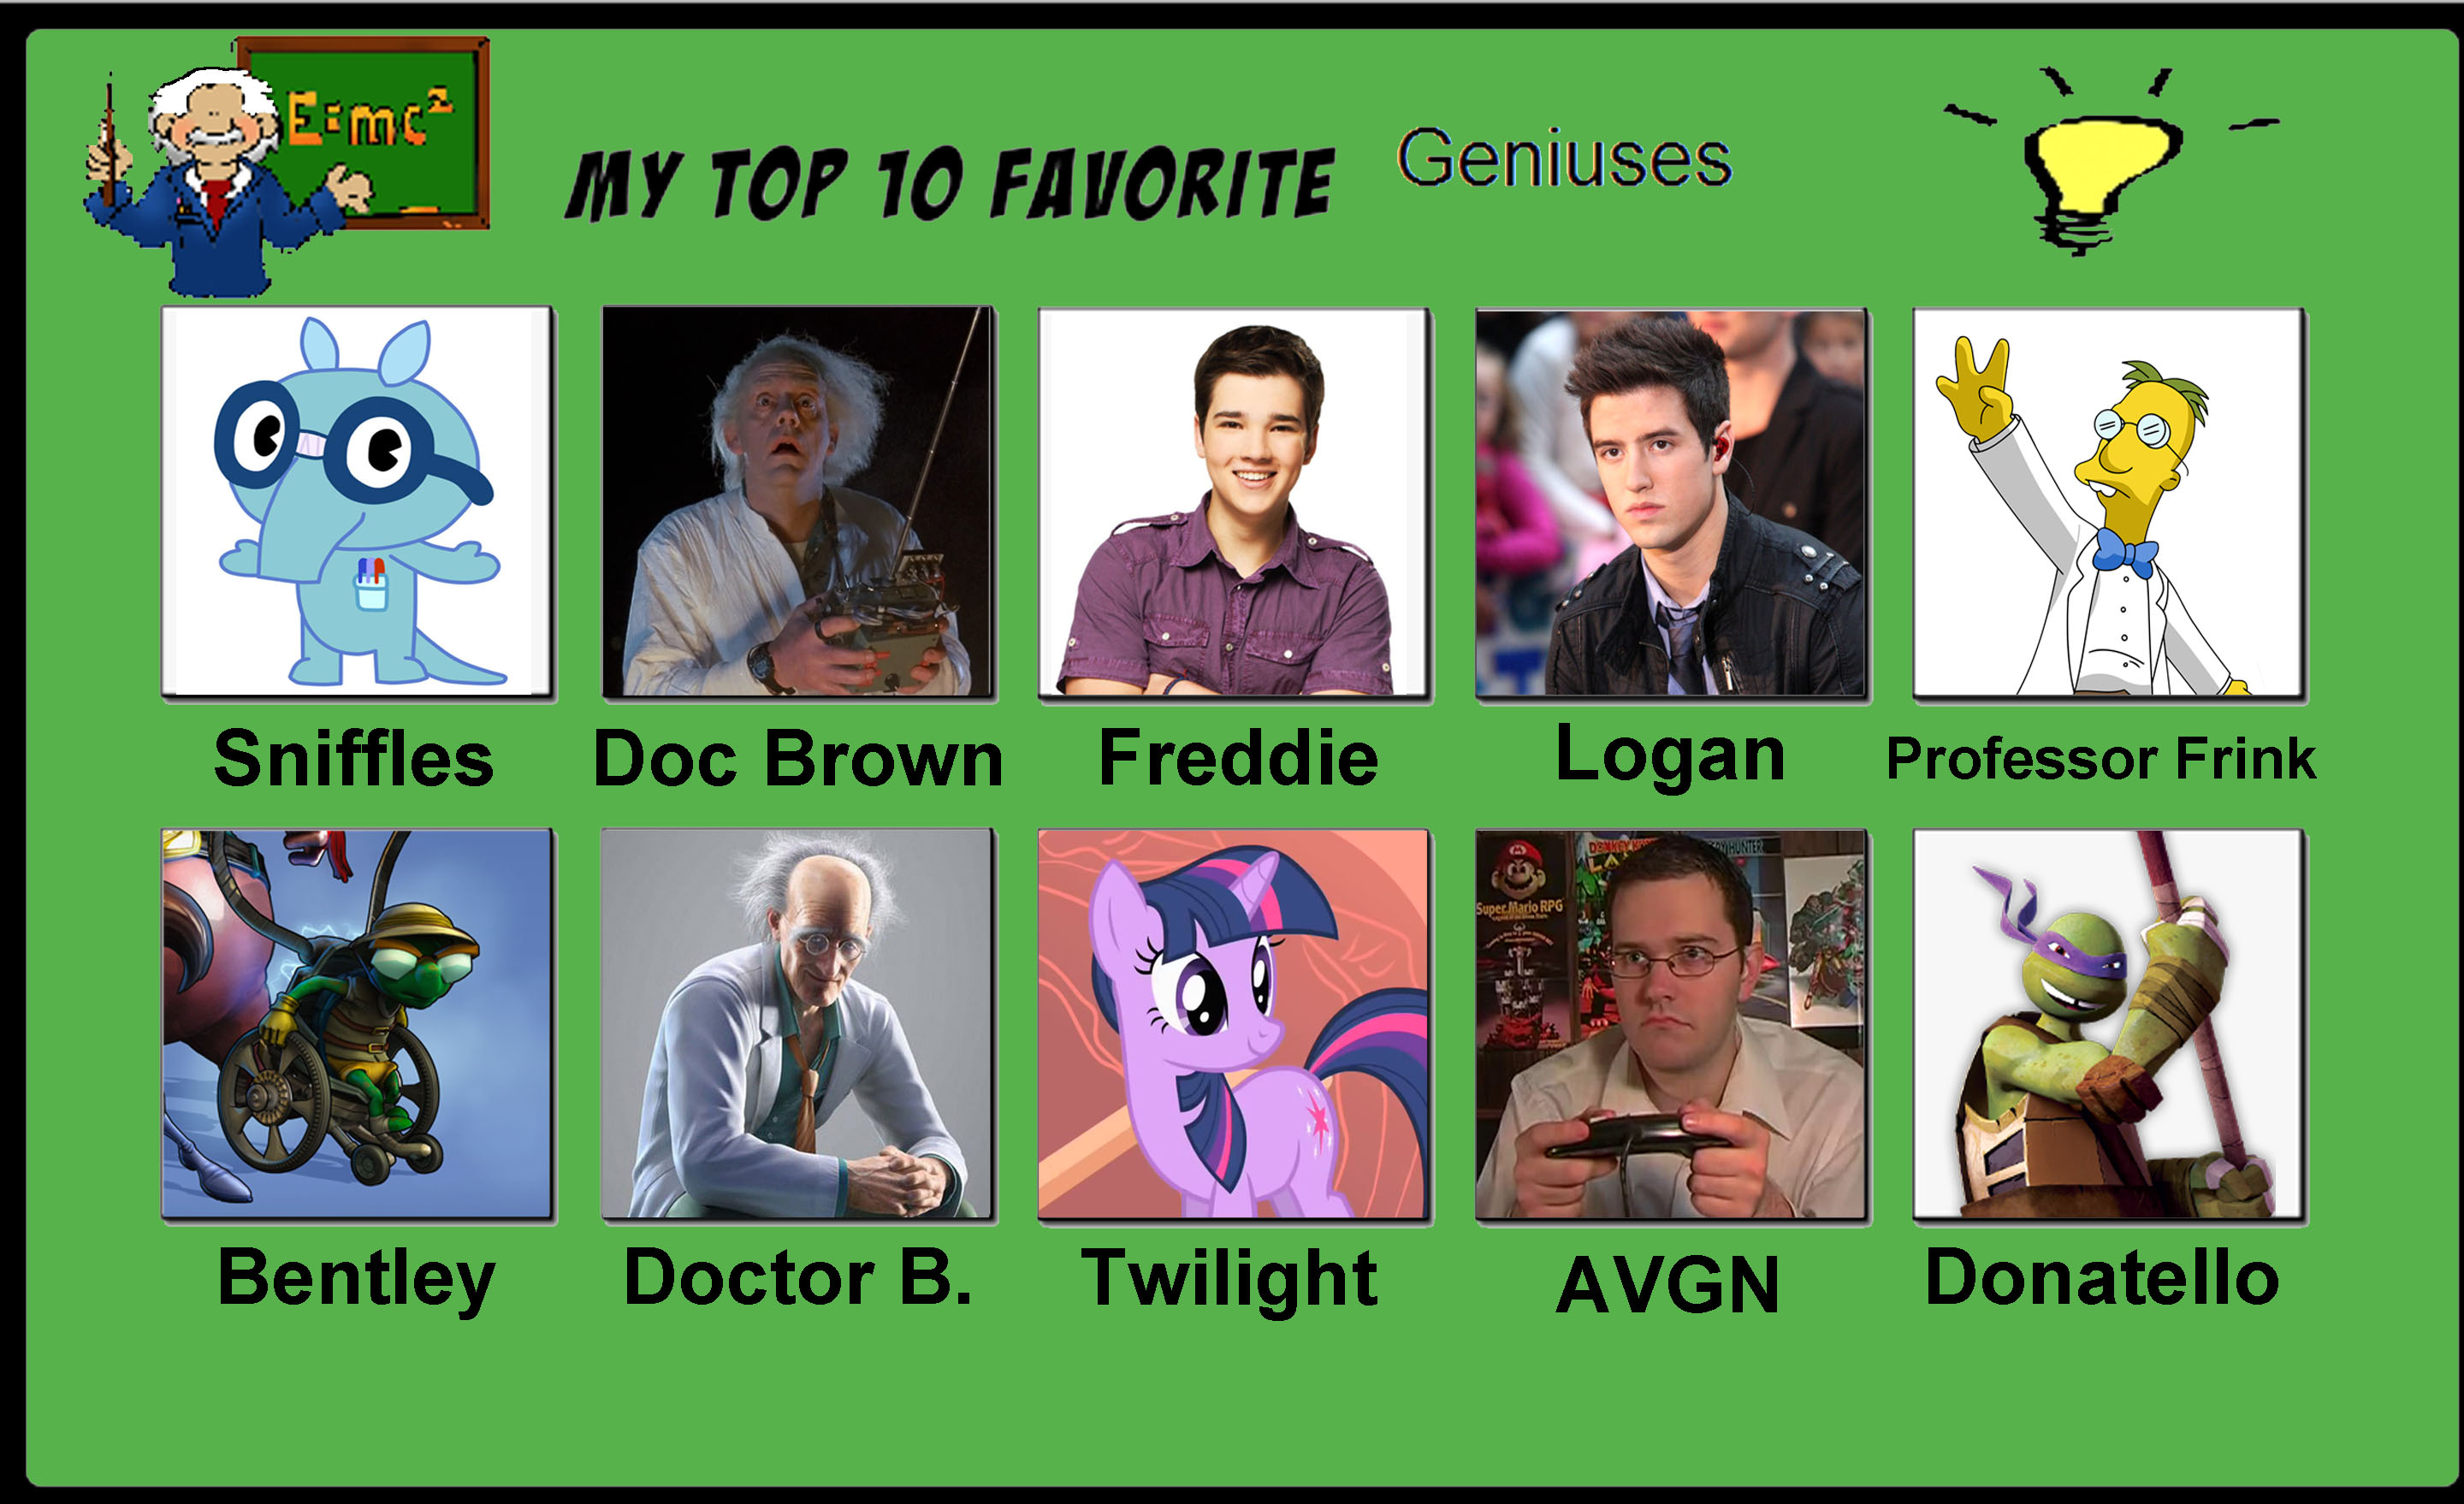 My top ten favorite geniuses by porygon2z